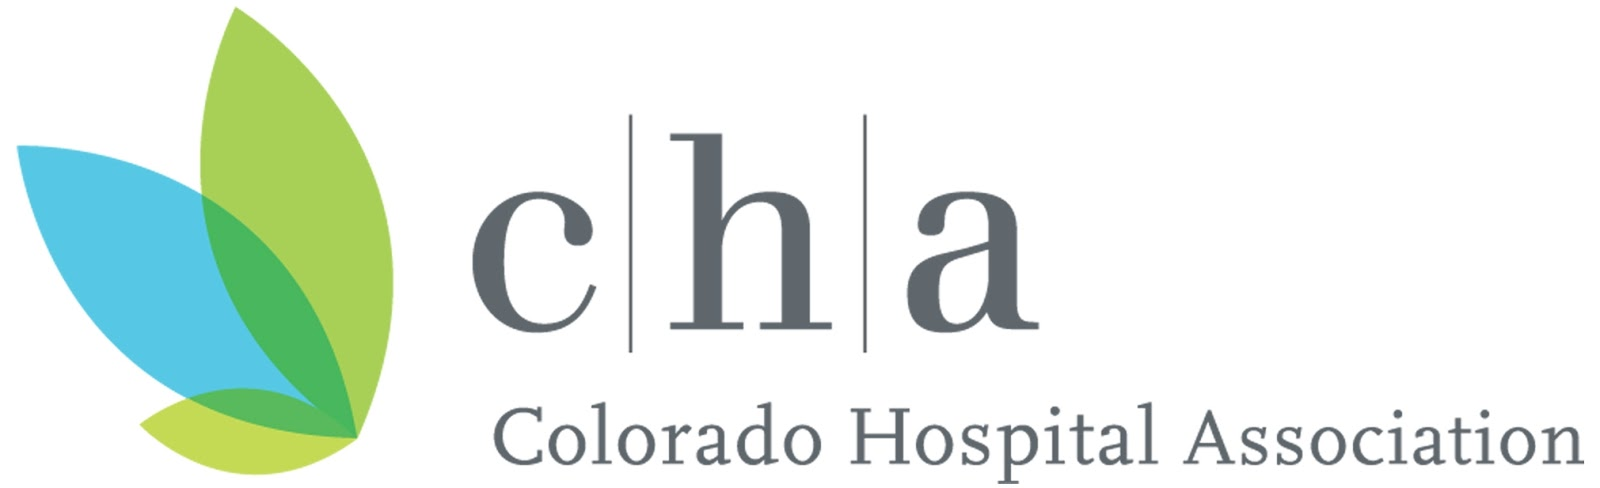 Colorado Hospital Association (CHA)